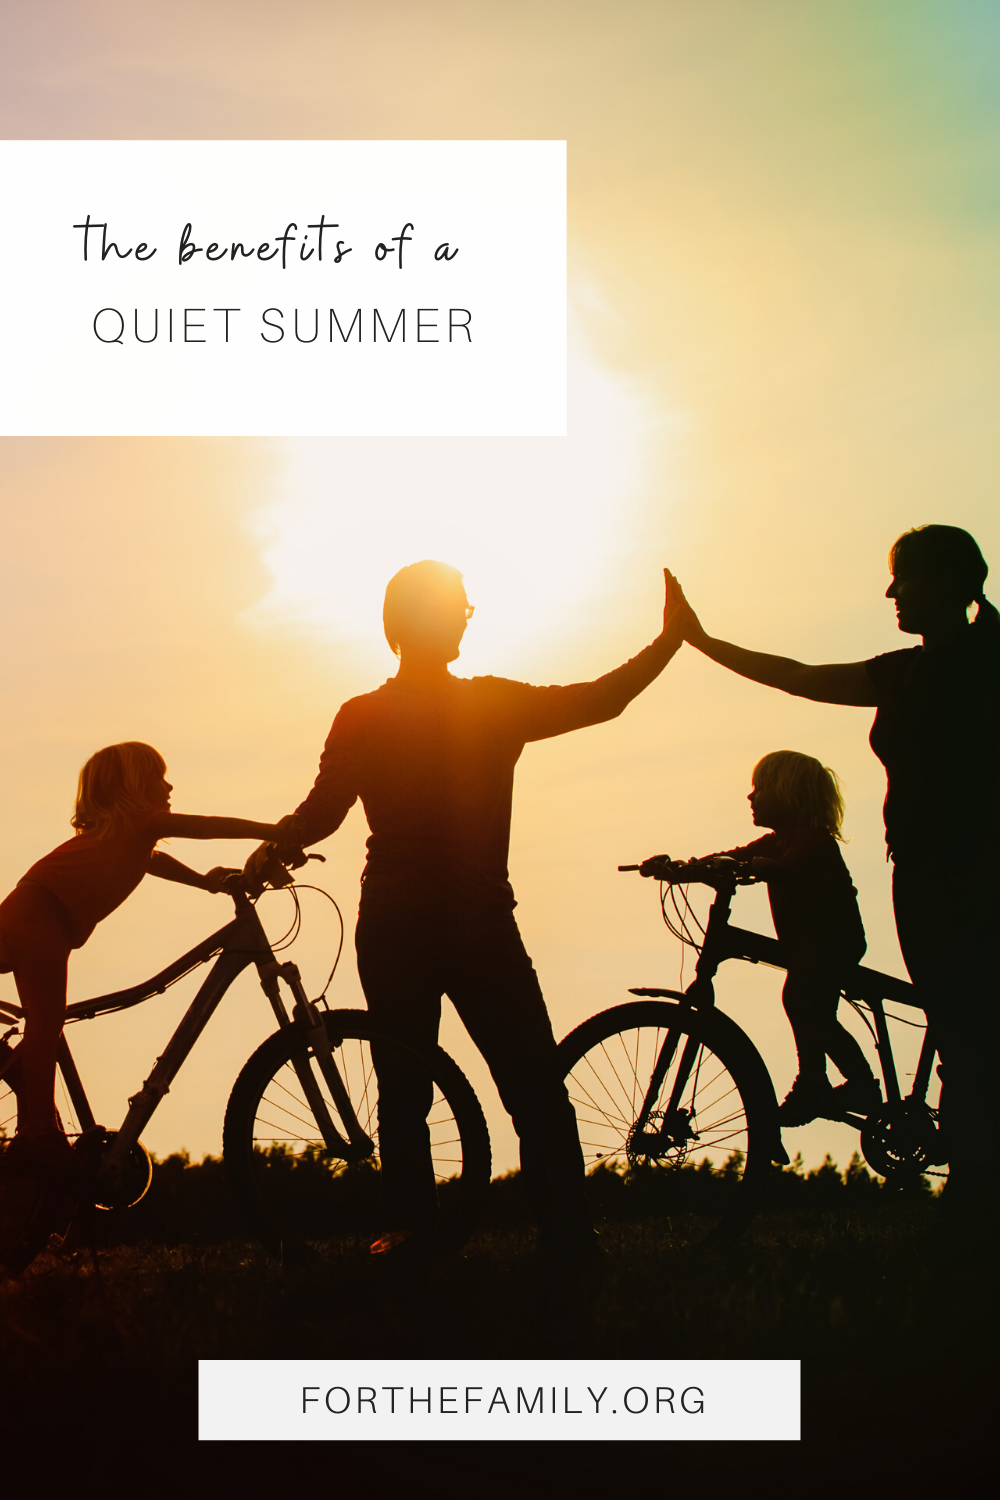 Now that the usual packed summer schedule has been completely cleared, summer will be much quieter than we anticipated. Although unexpected, this quiet summer can bring even greater gifts from God!